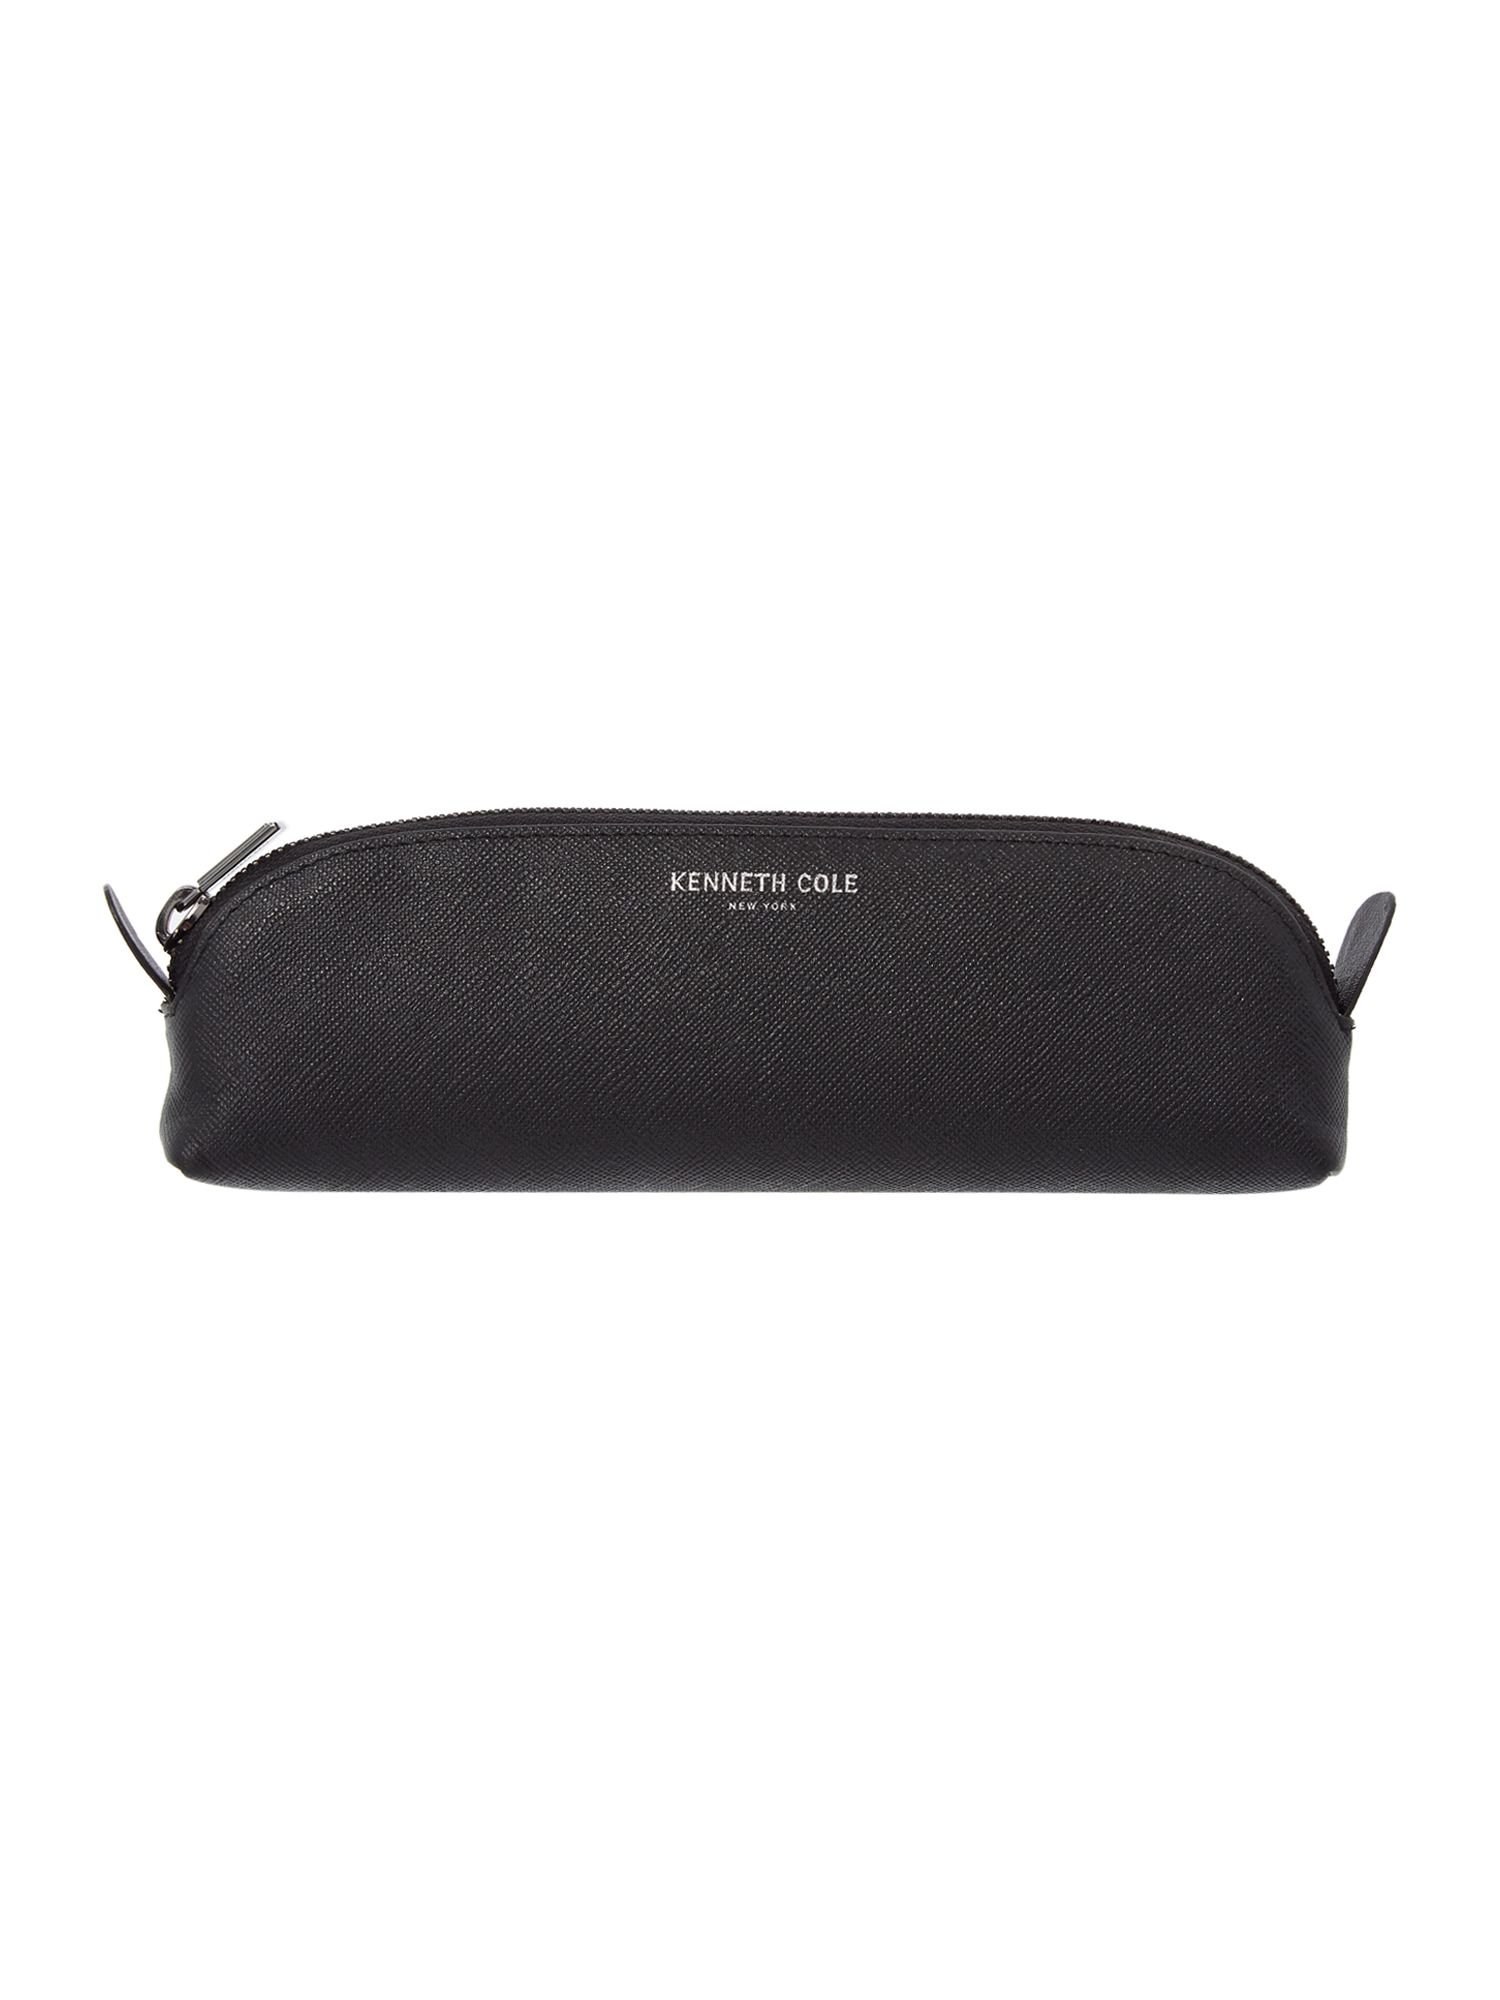 Leather Pencil Case by Kenneth Cole